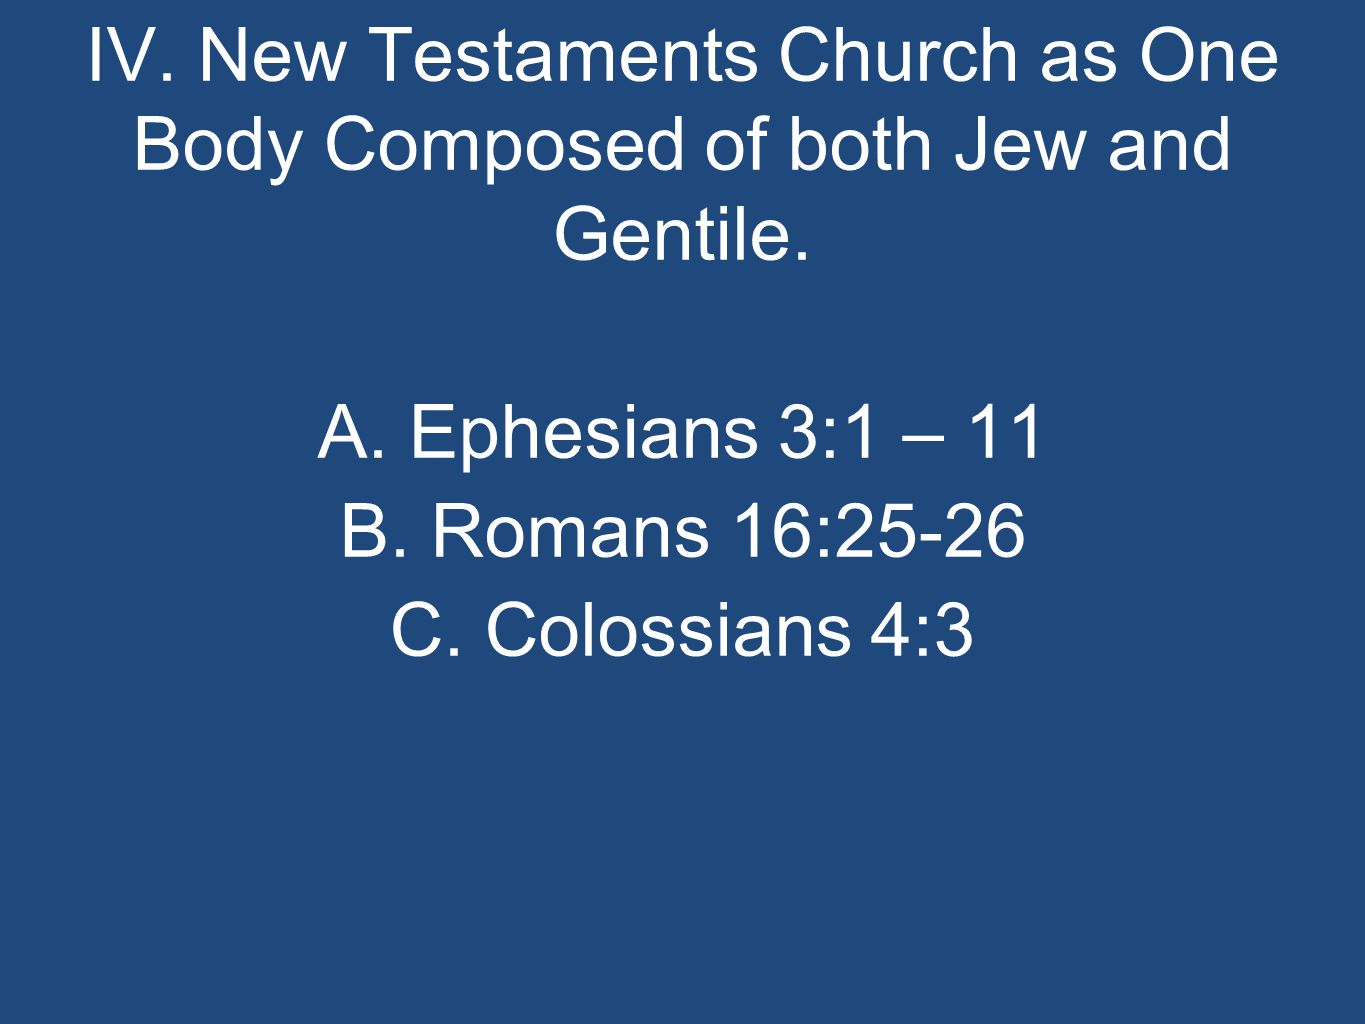 IV. New Testaments Church as One Body Composed of both Jew and Gentile.